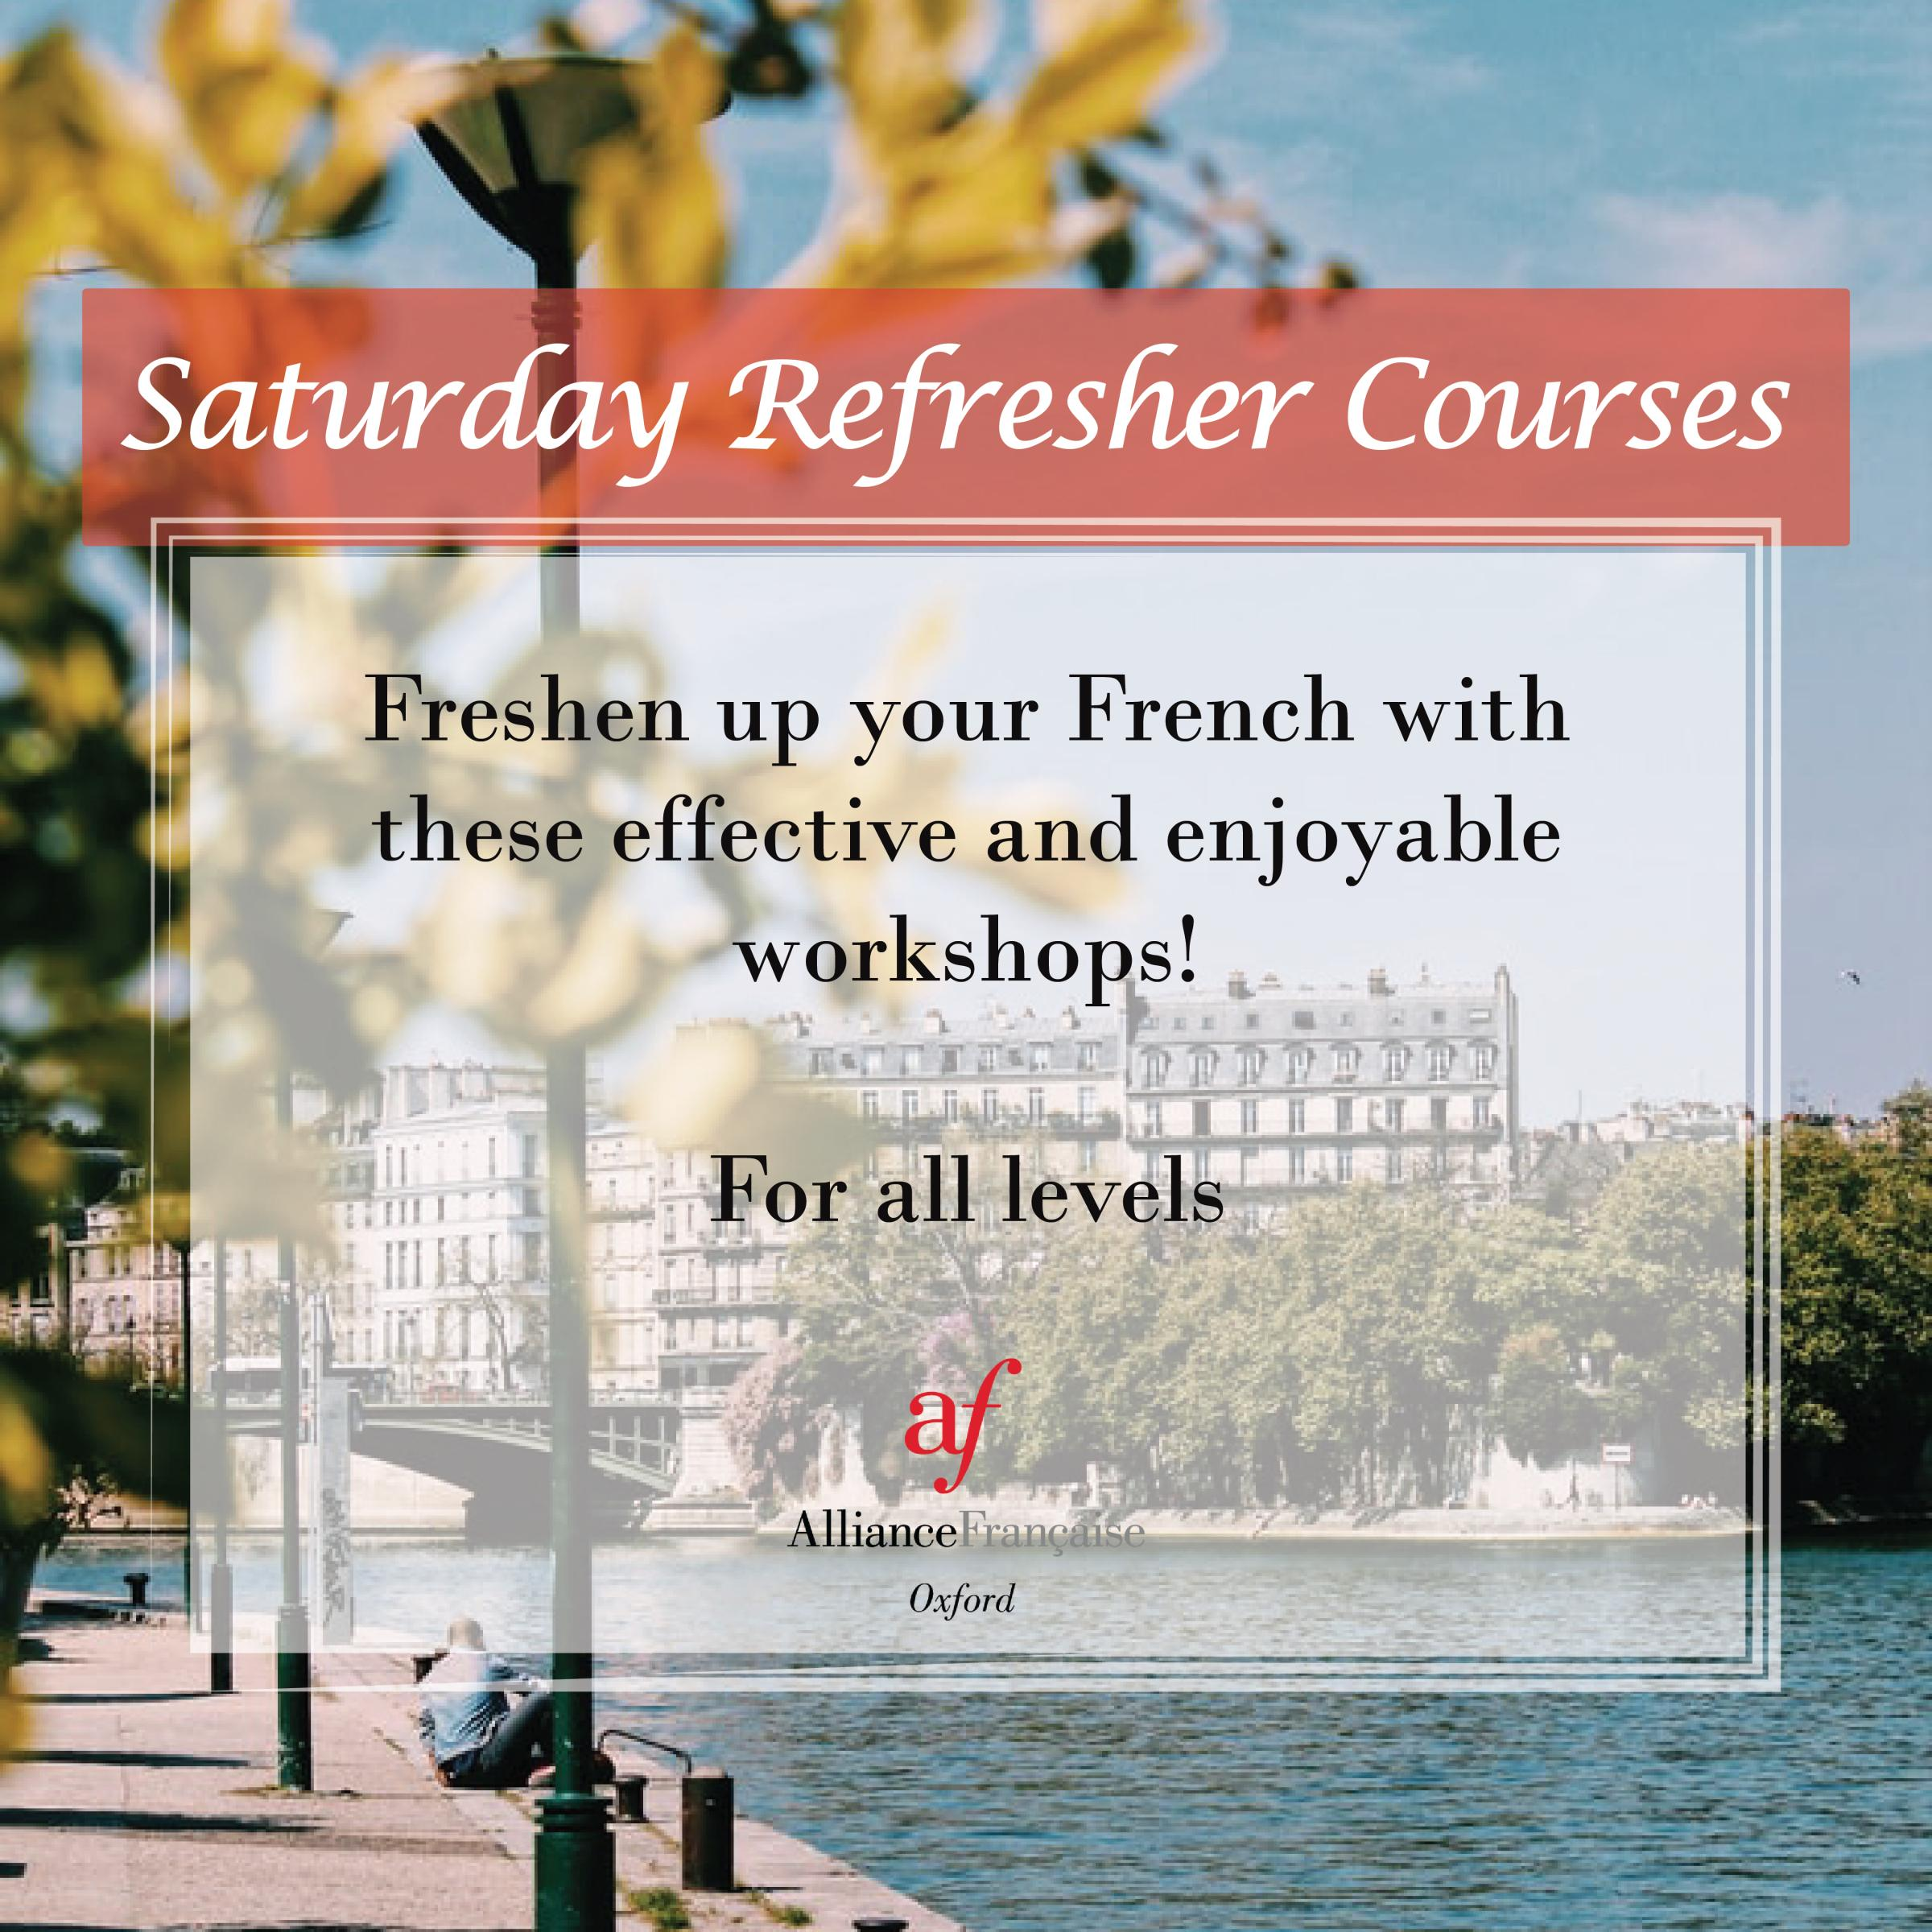 Online Saturday Refresher Course - freshen up your French